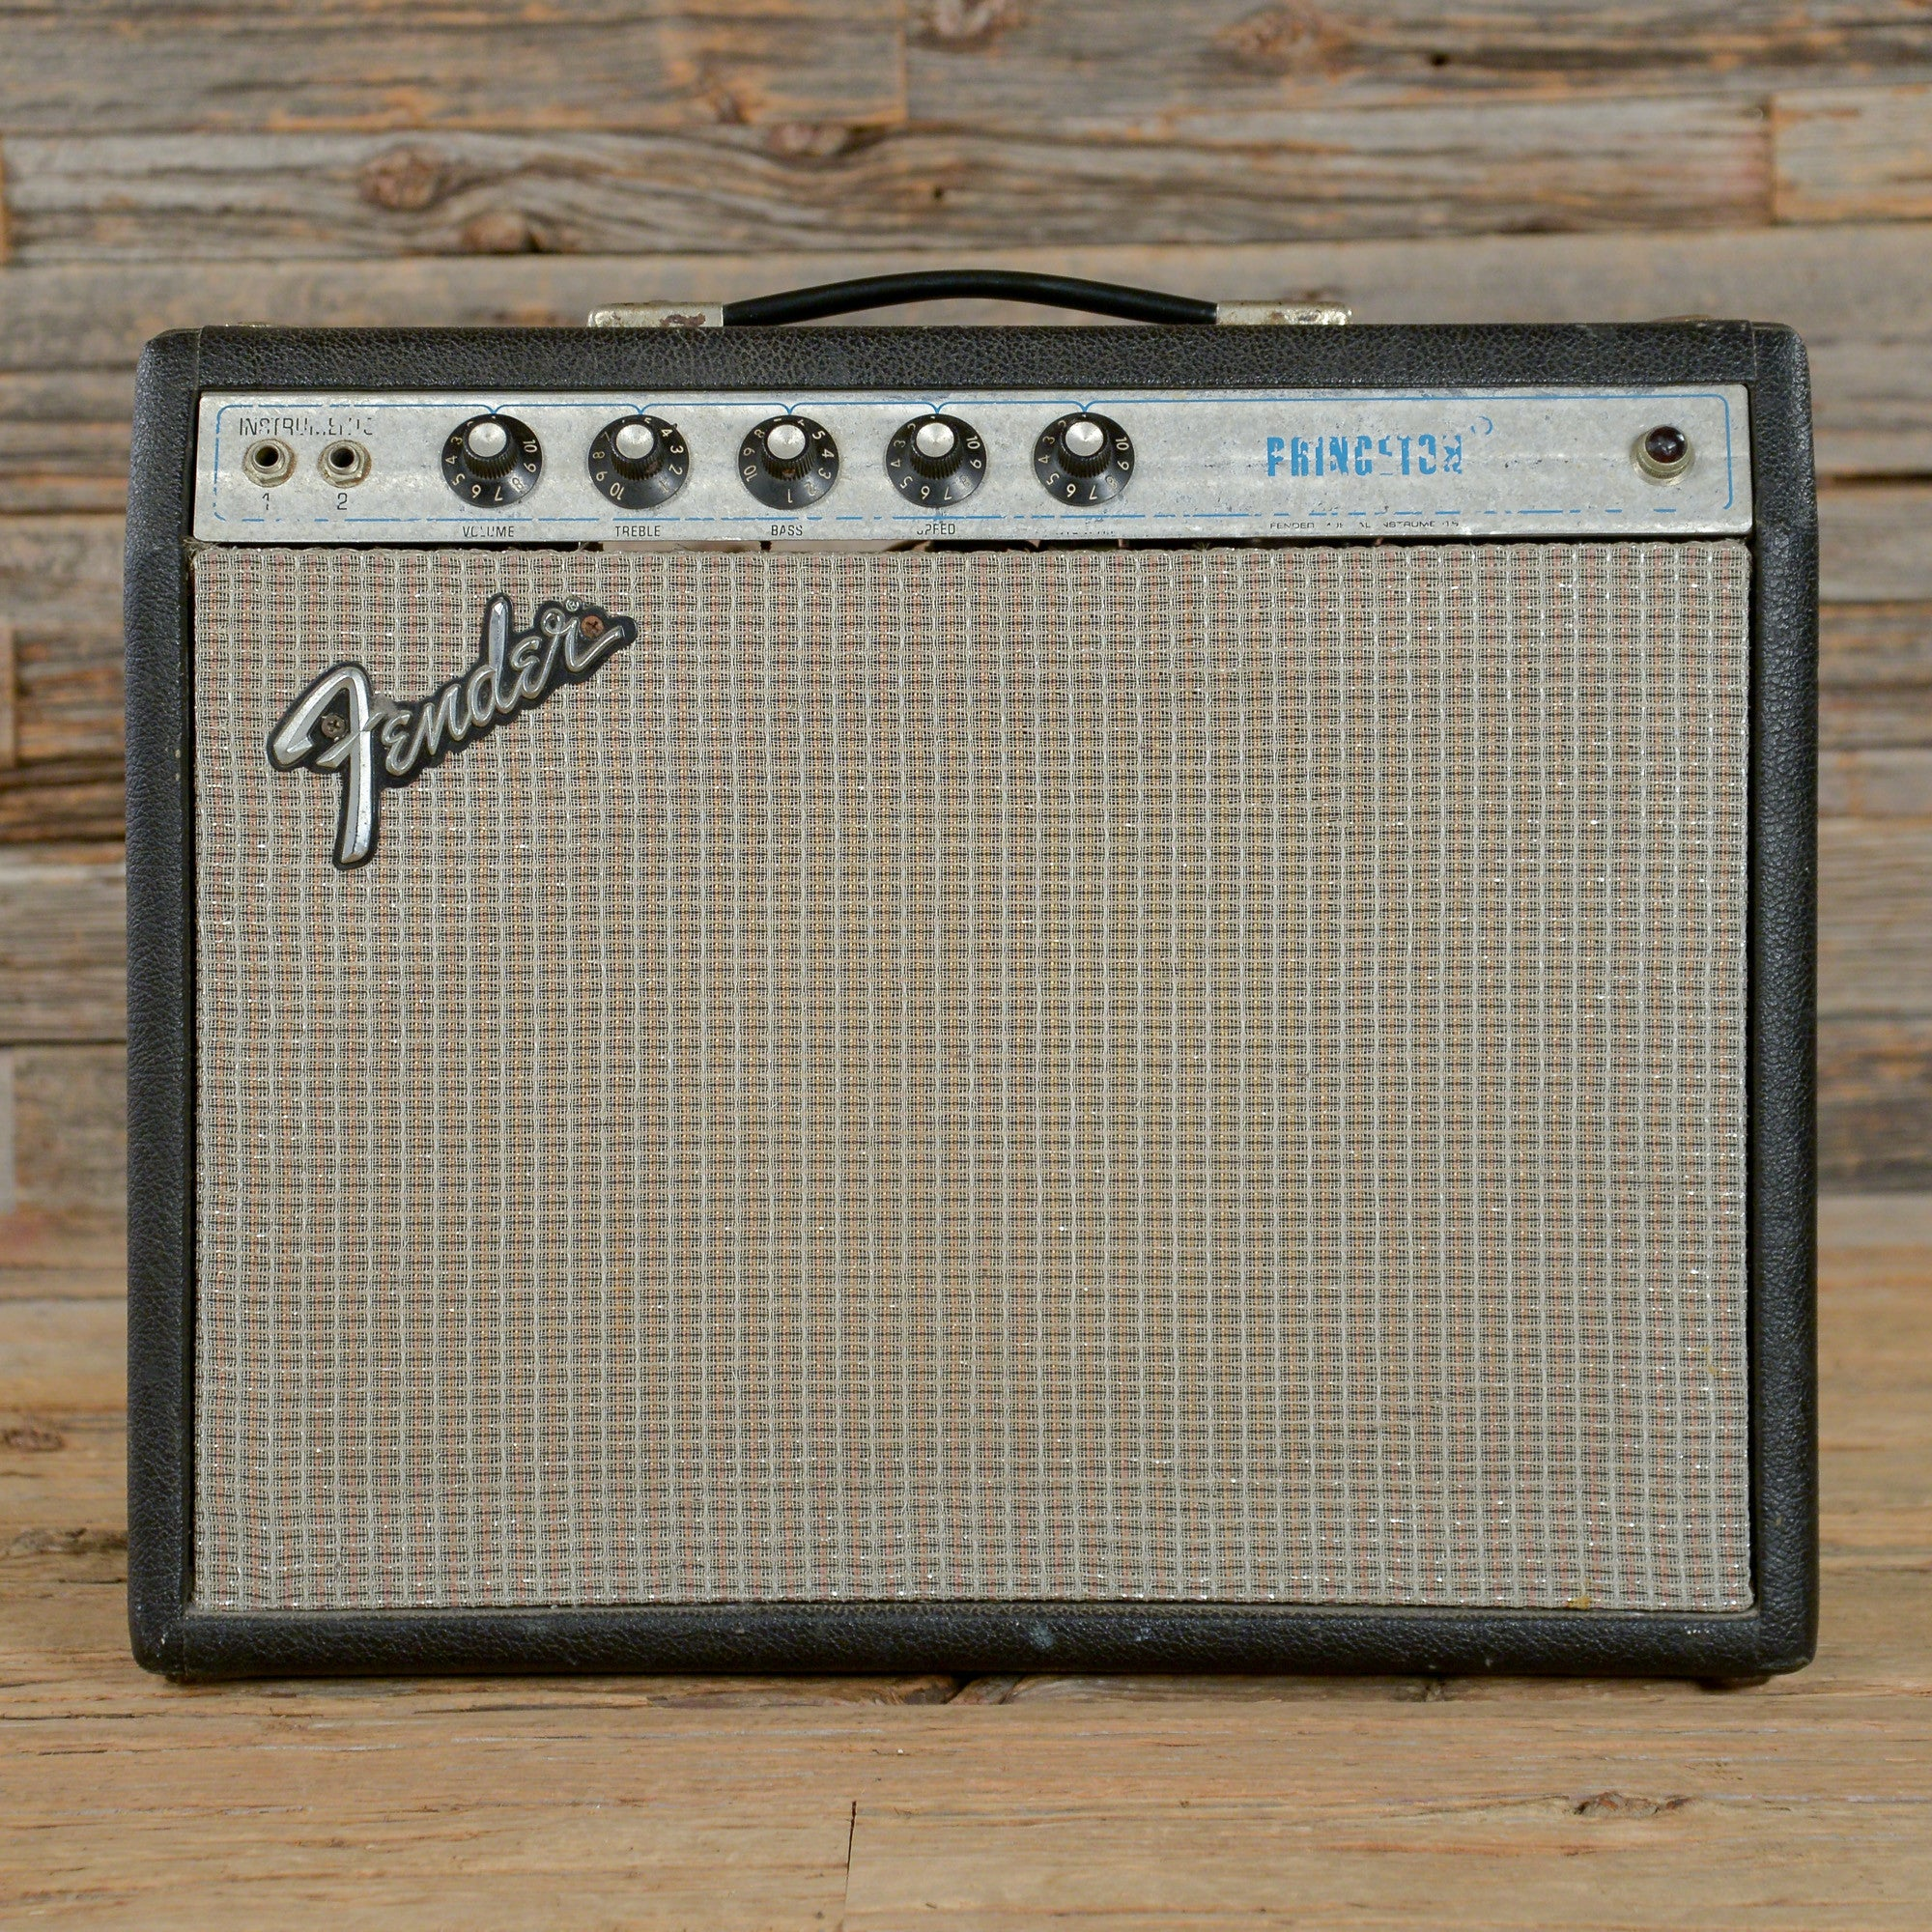 This 1974 Fender Princeton Amp 1x10 Combo Amp Is One